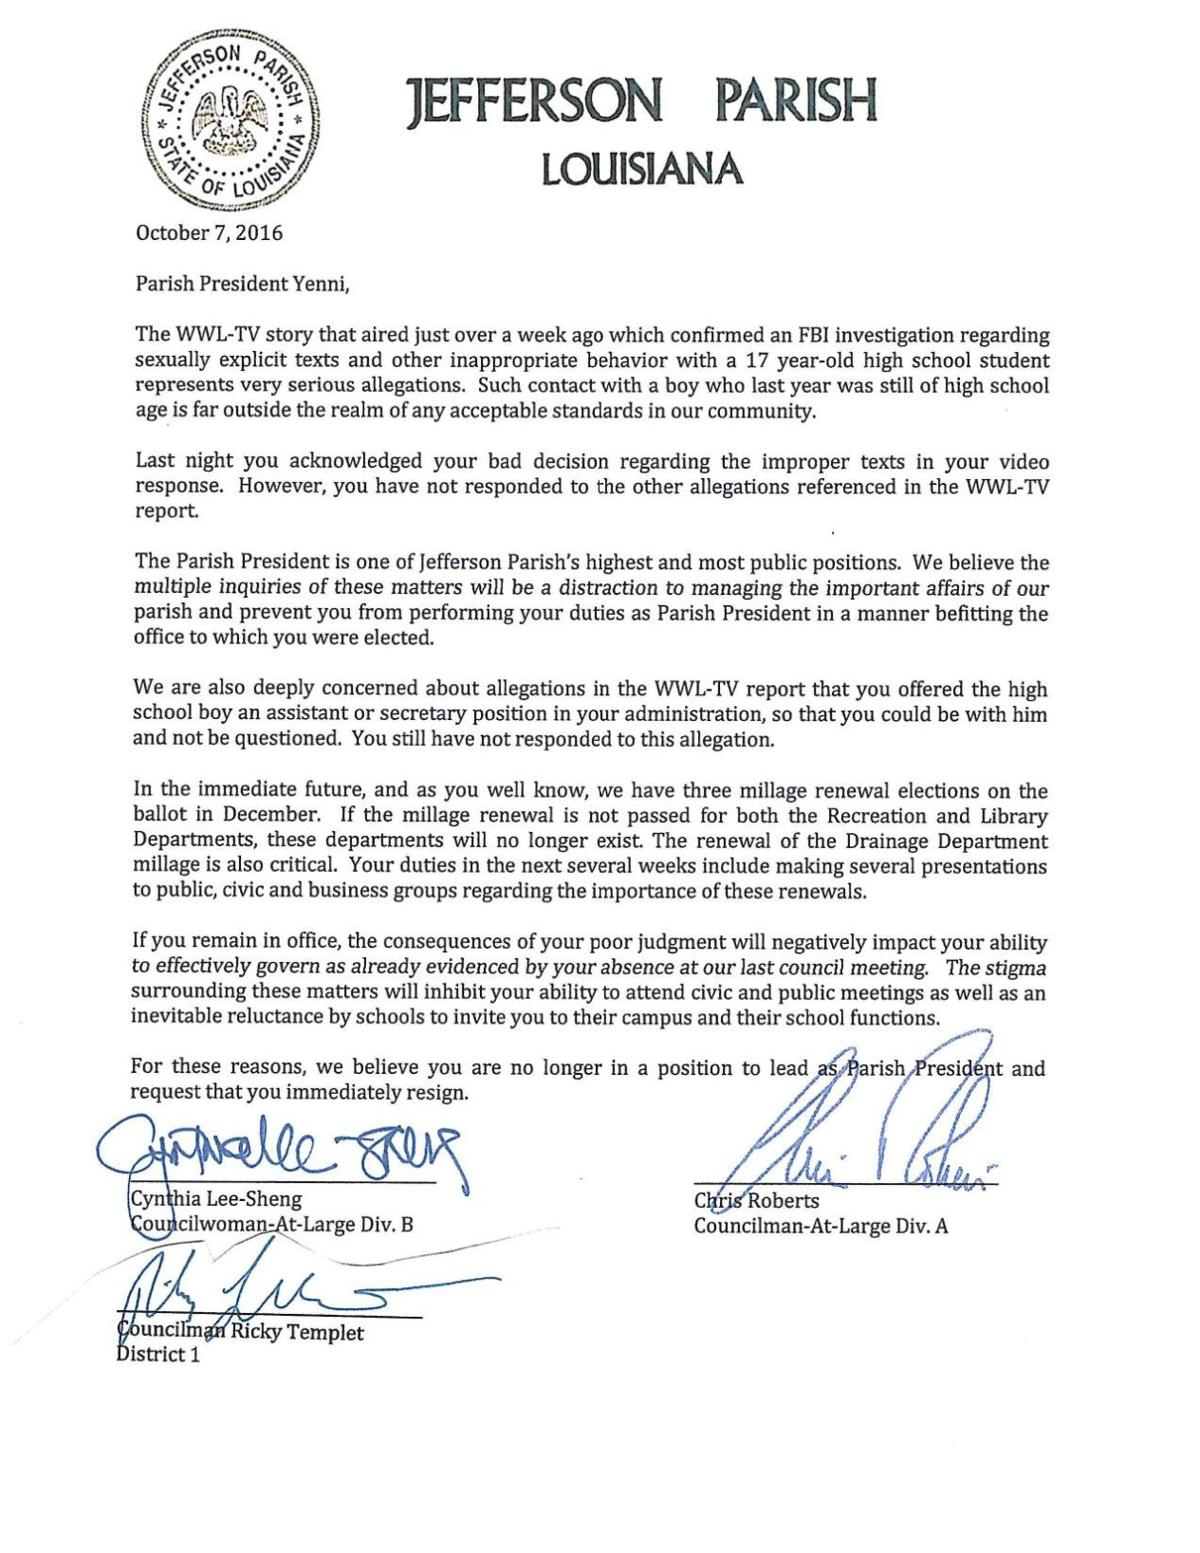 Jefferson Councilmembers Cynthia Lee-Sheng, Chris Roberts and Ricky Templet ask Mike Yenni to resign